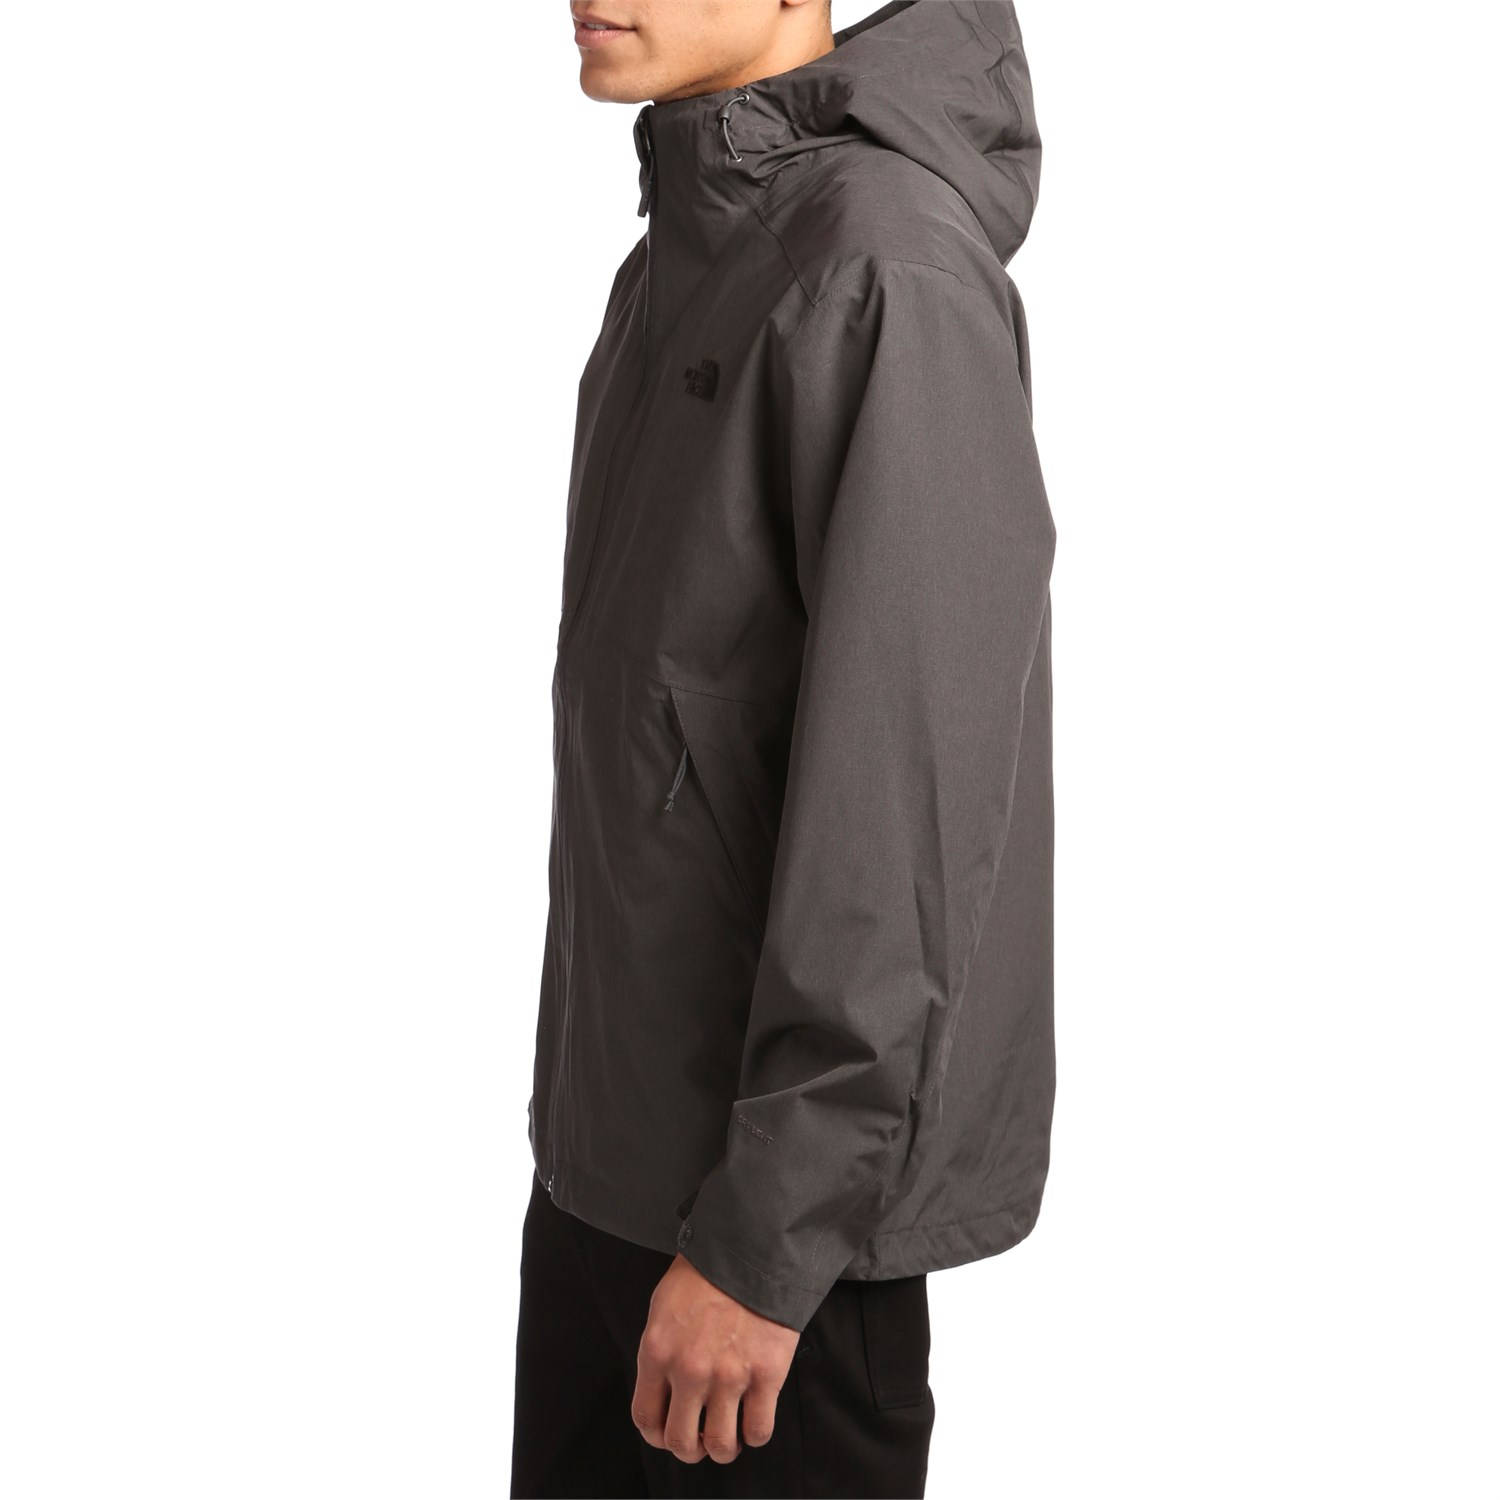 ad79ce0e5 The North Face Millerton Jacket